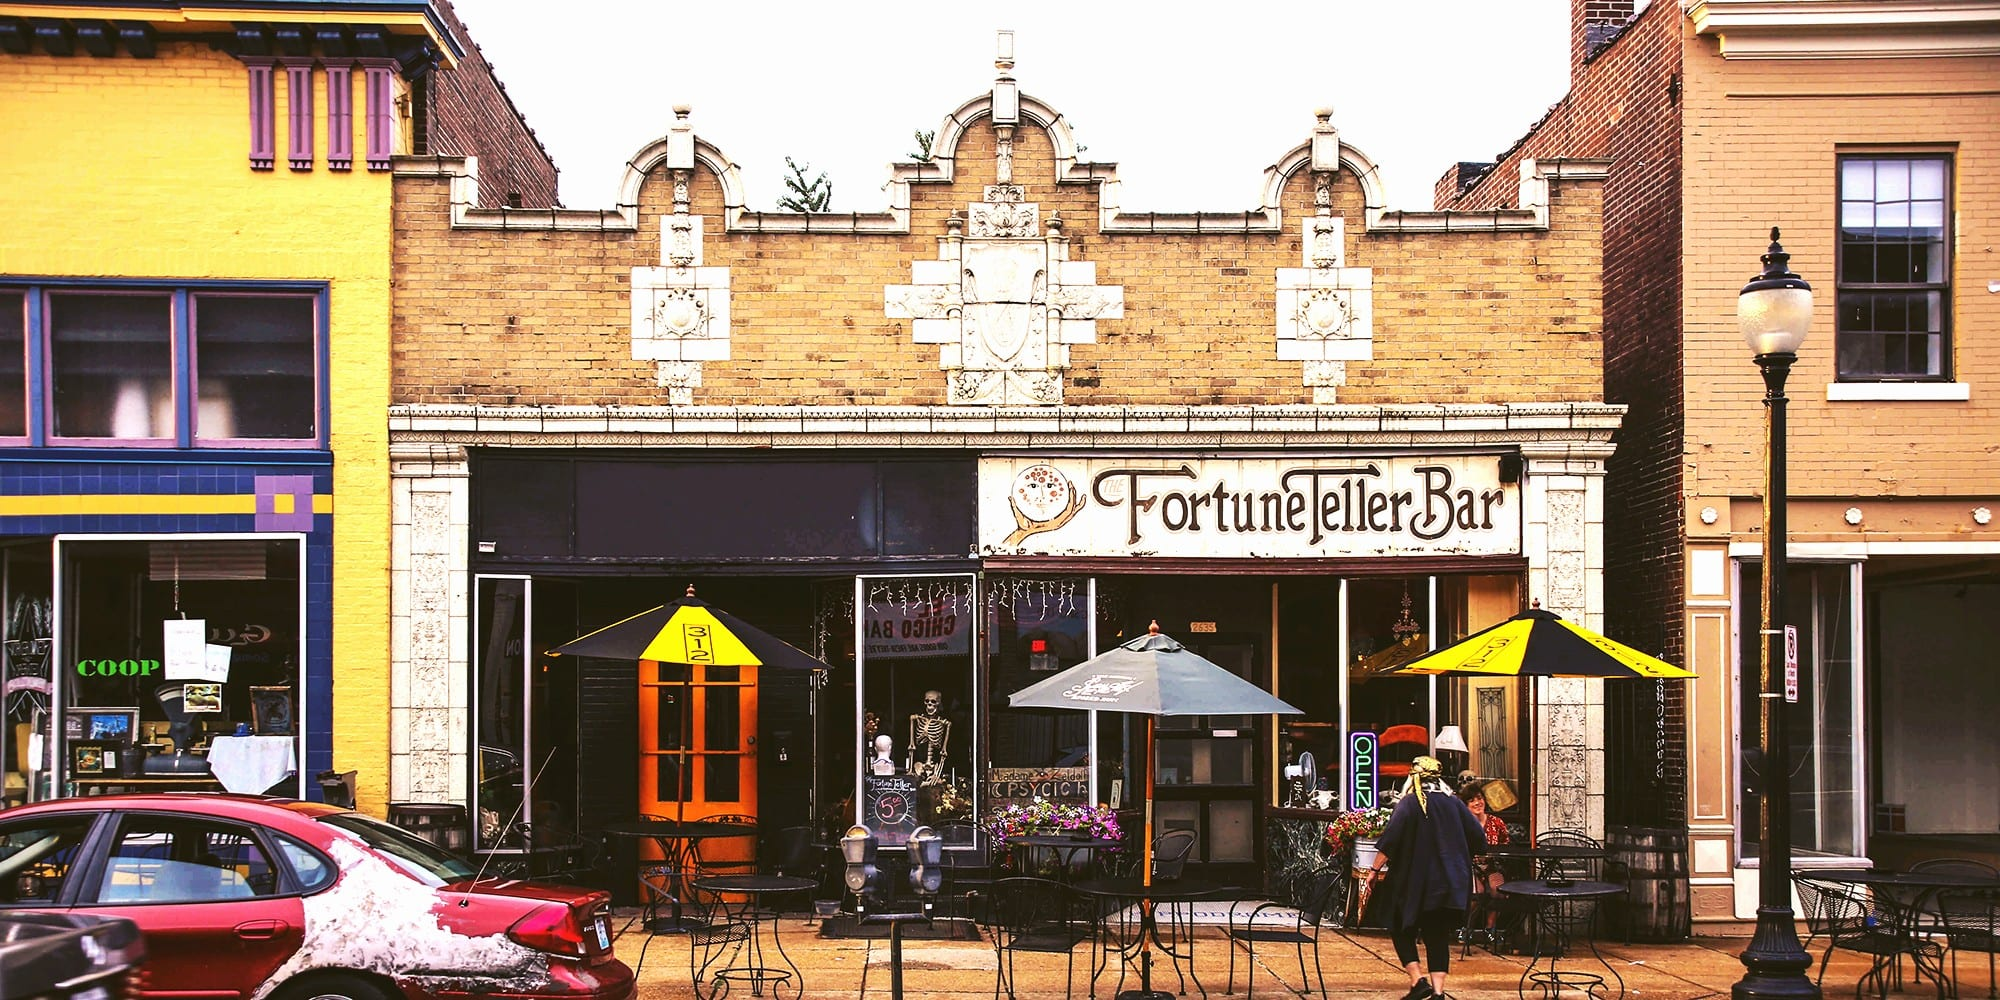 The Fortune Teller Bar on Cherokee Street. Photo by Paul Sableman.